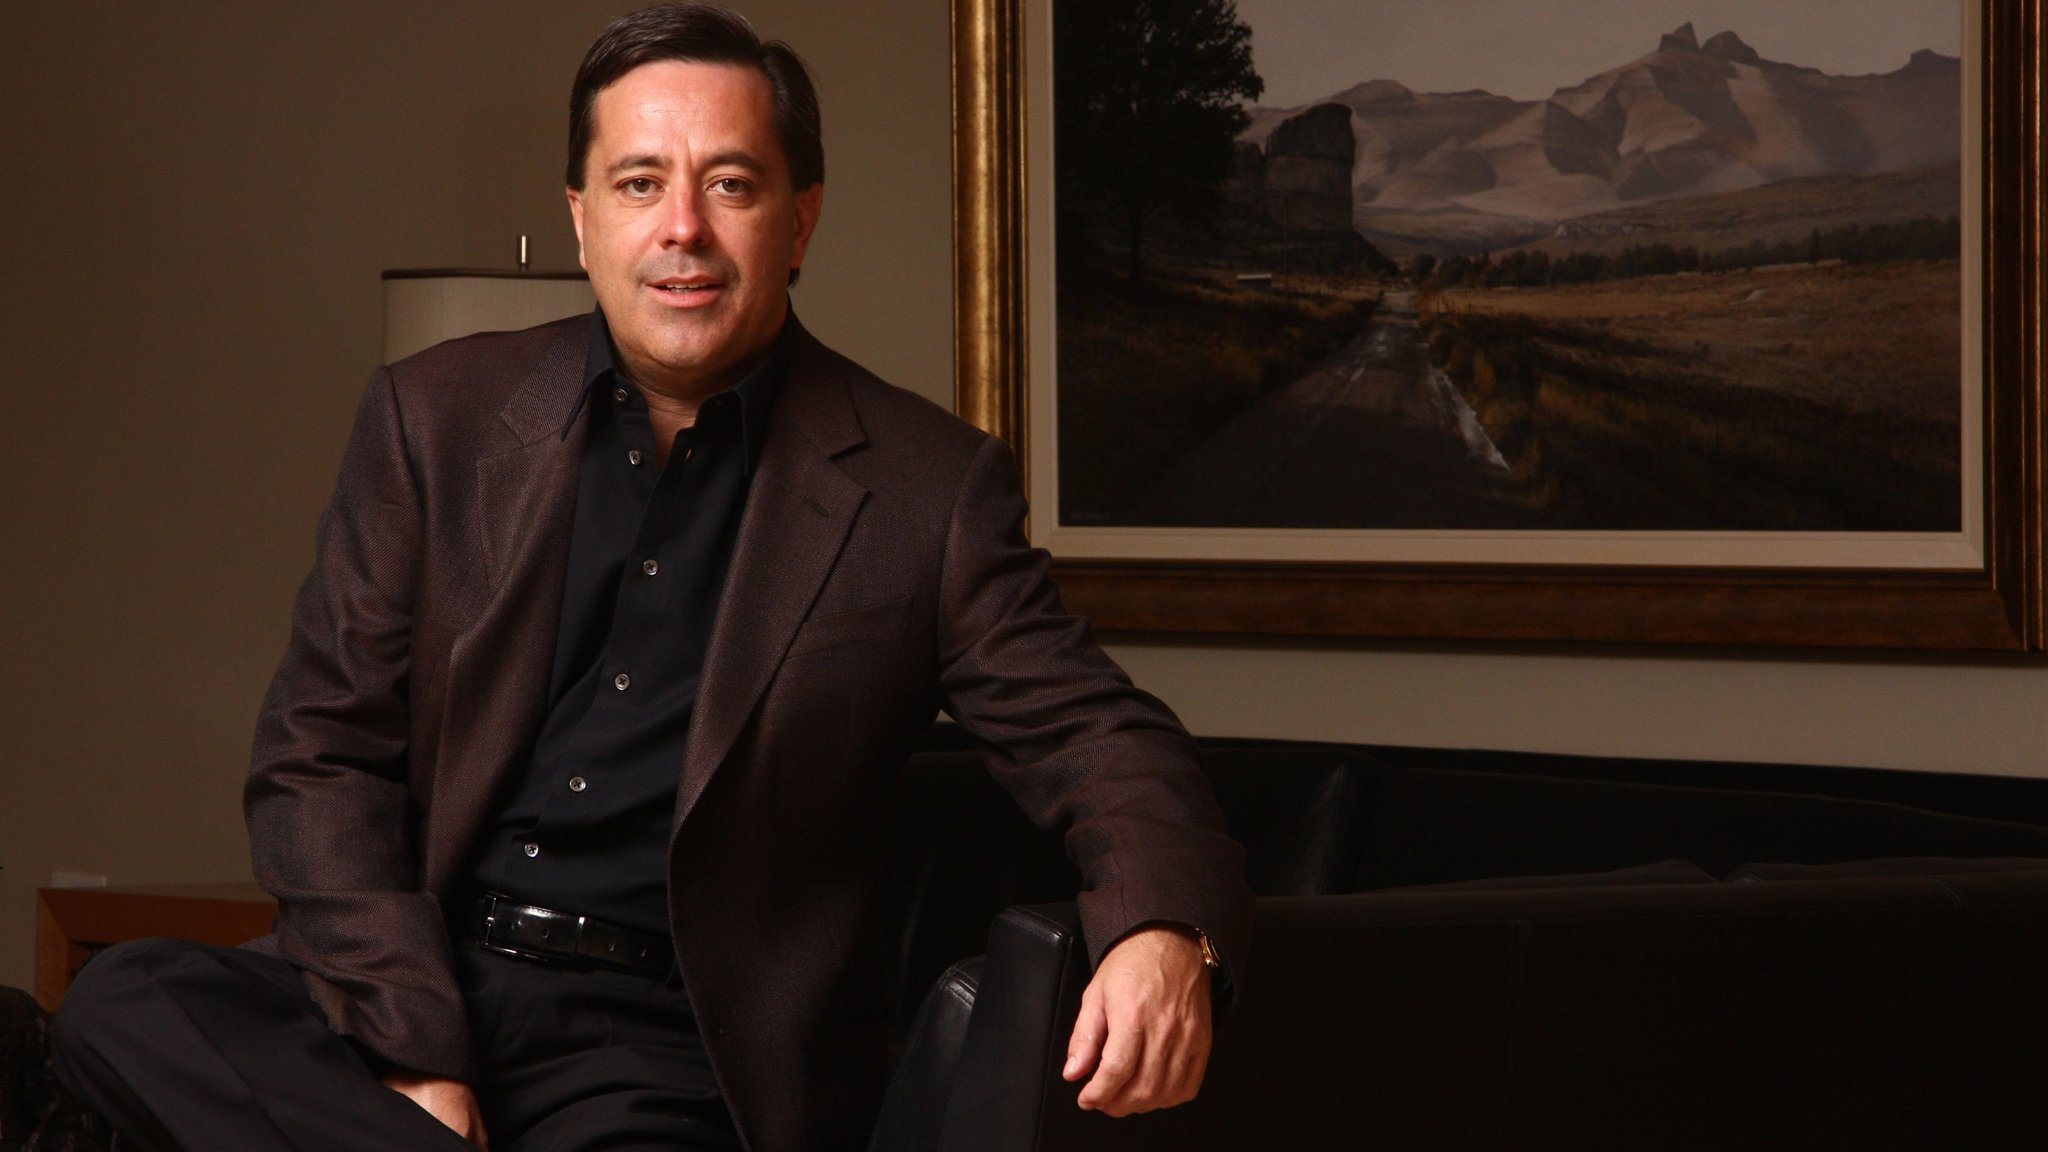 Steinhoff reports ex-chief executive Jooste to police